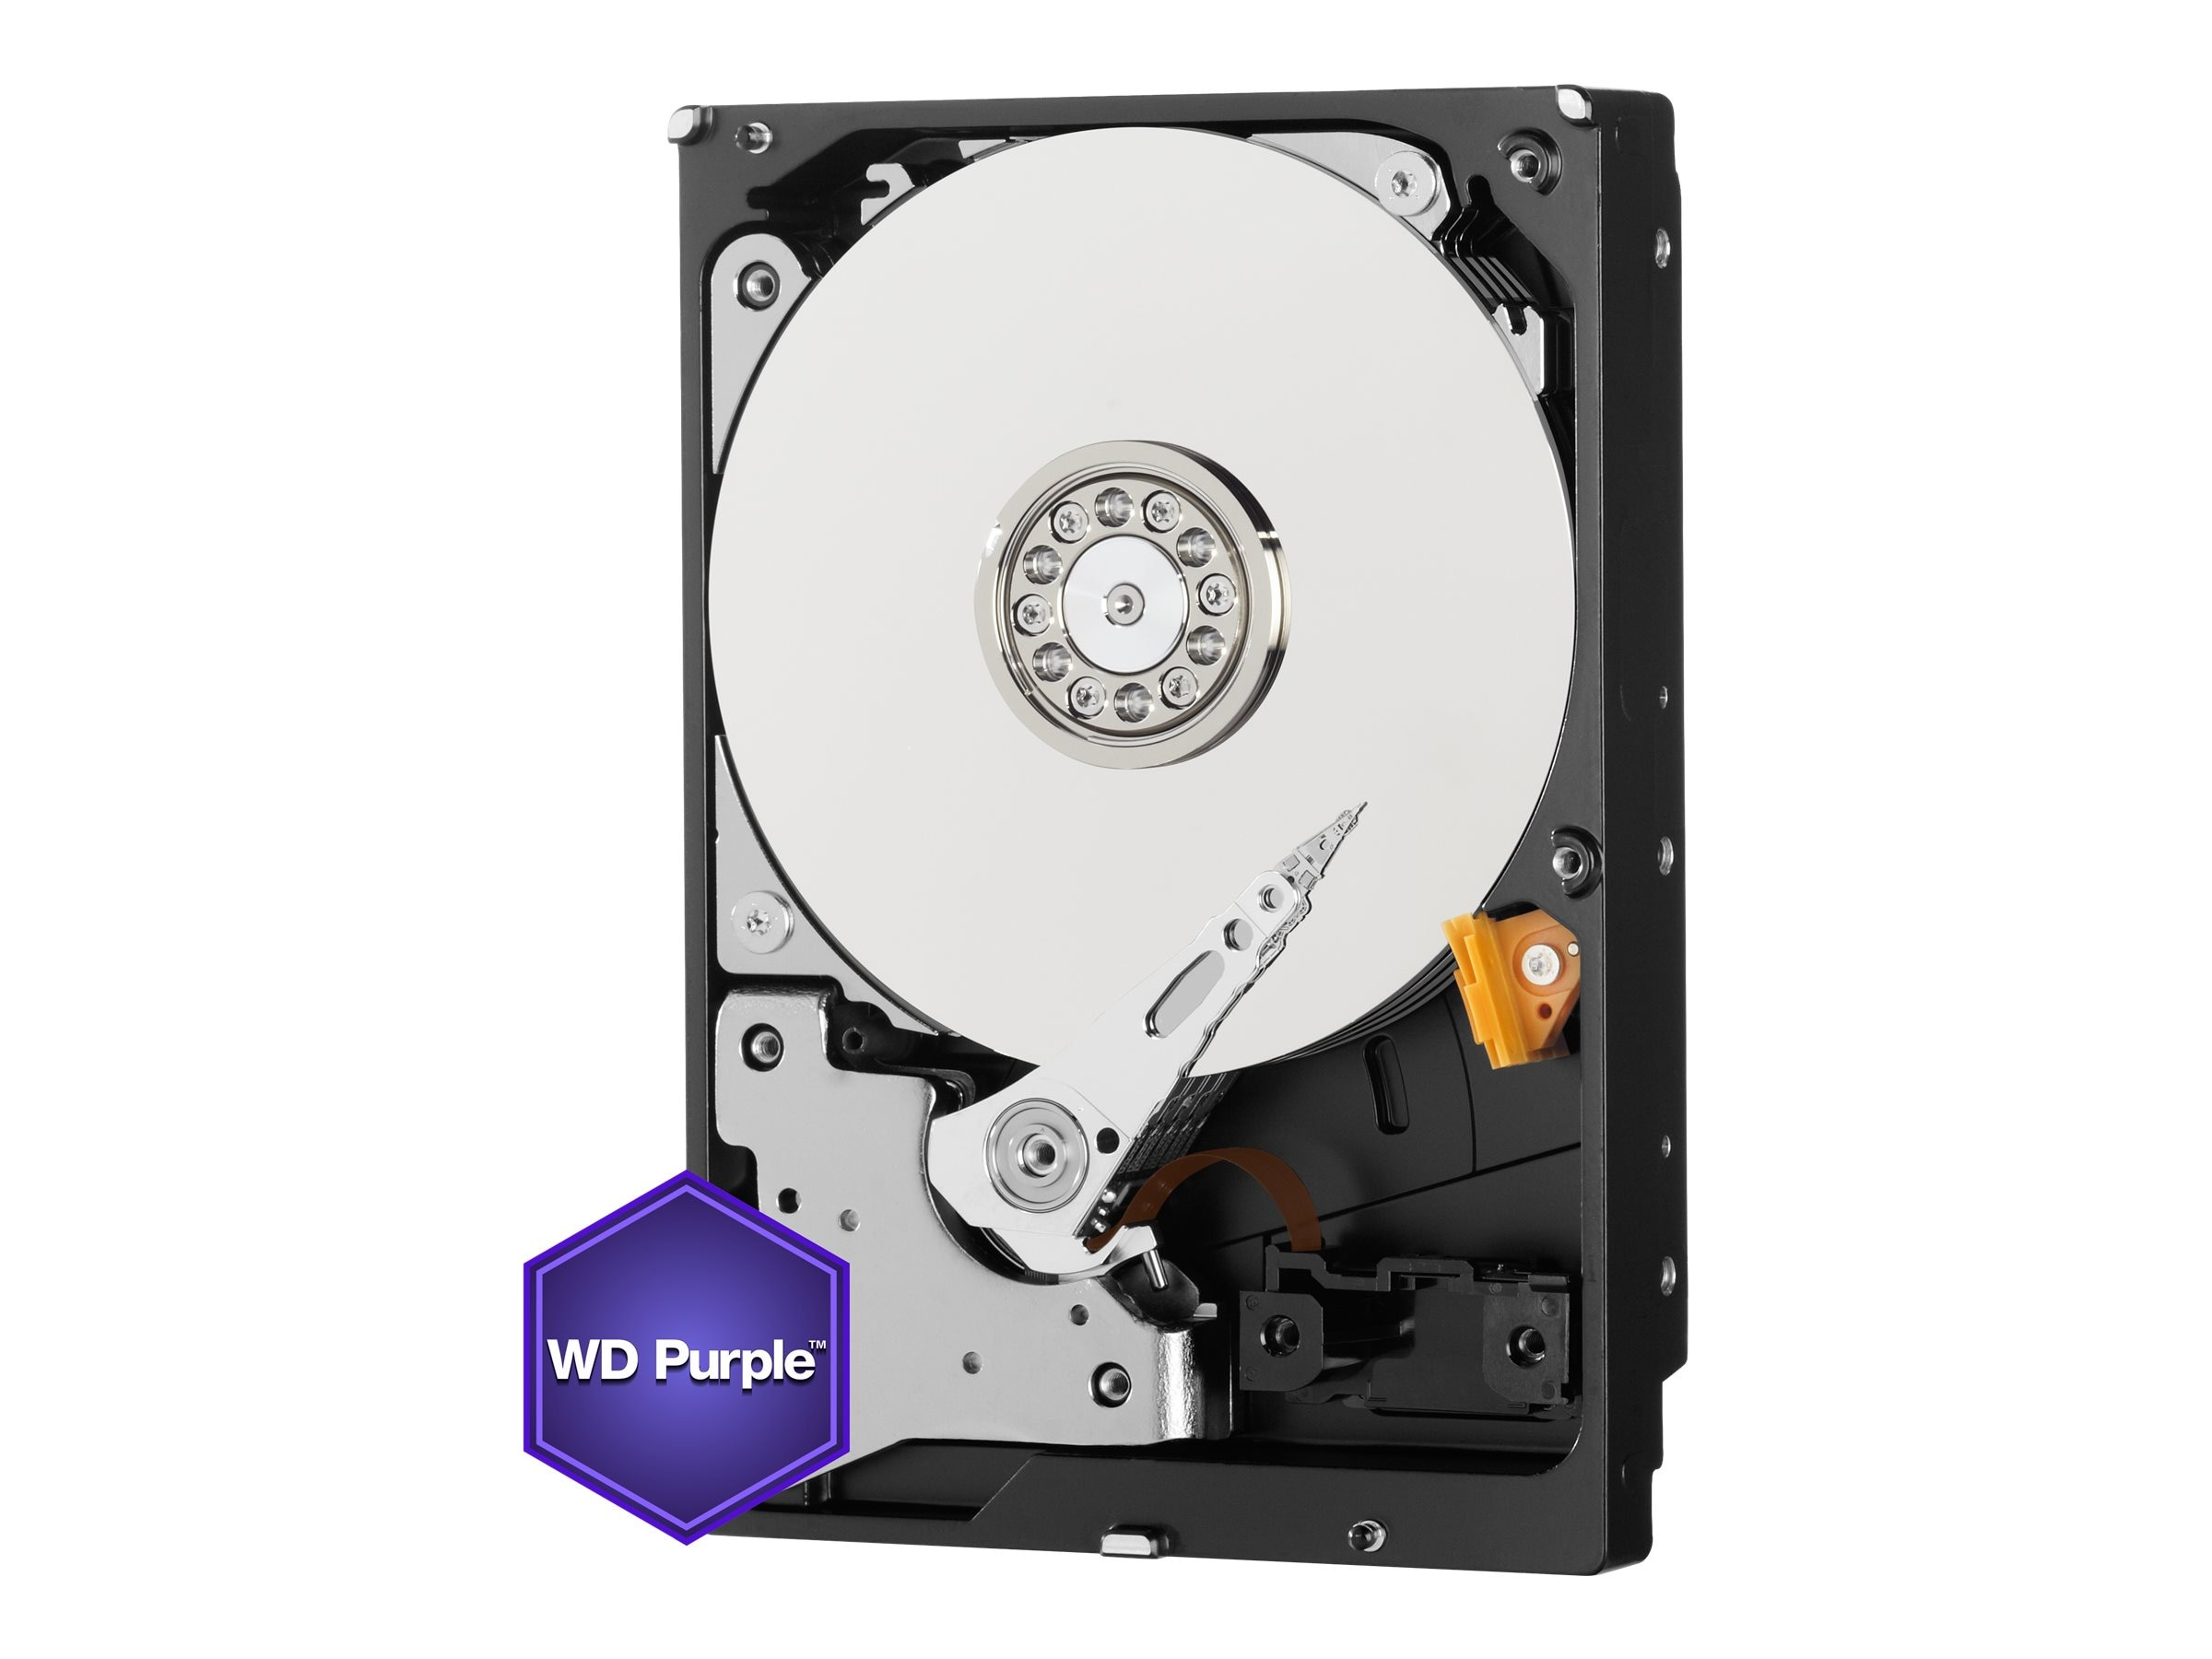 WD 1TB WD Purple SATA 6Gb s 3.5 Internal Surveillance Hard Drive